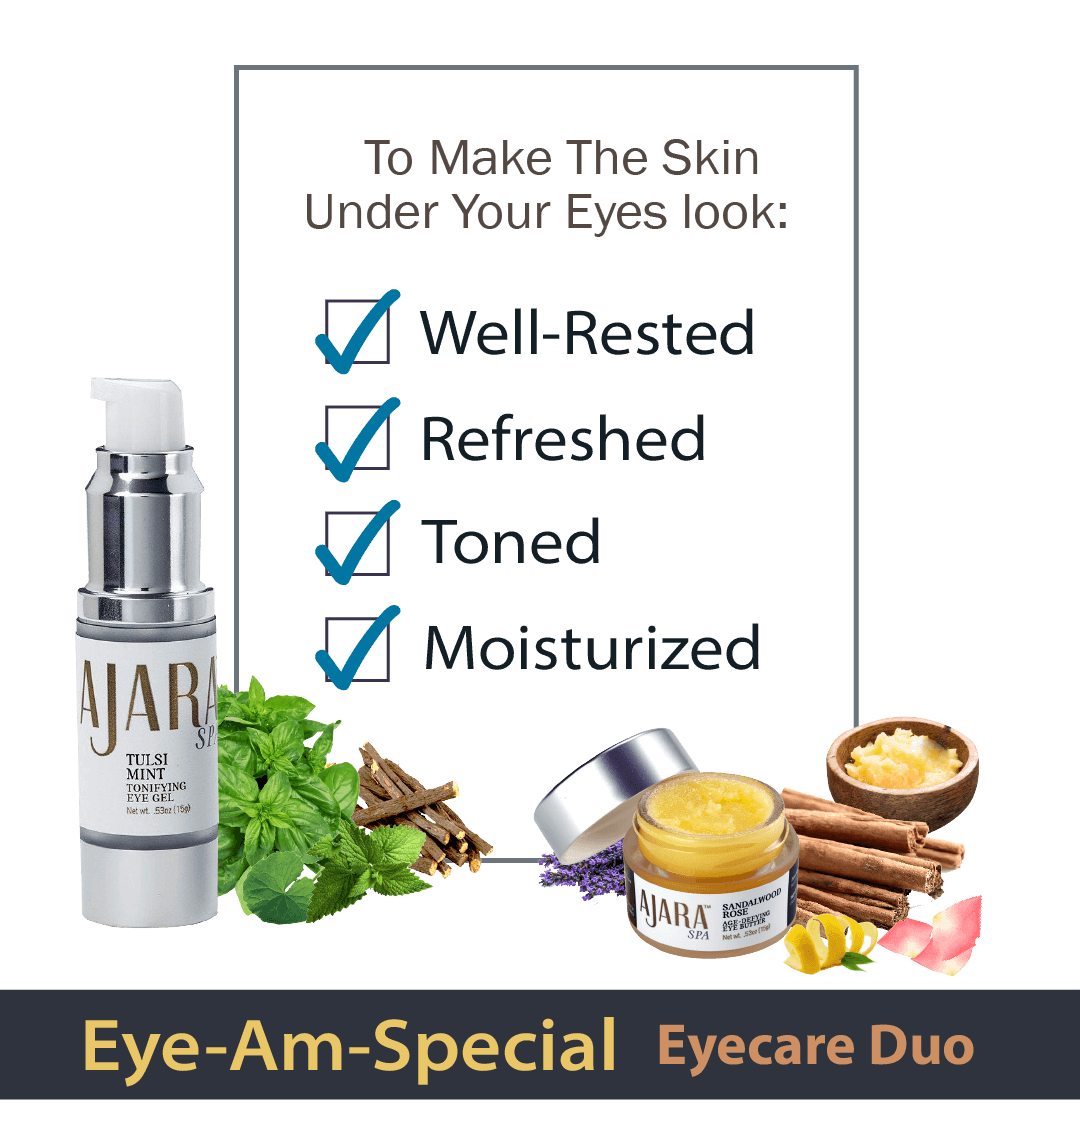 Eye-Am-Special Eyecare Duo